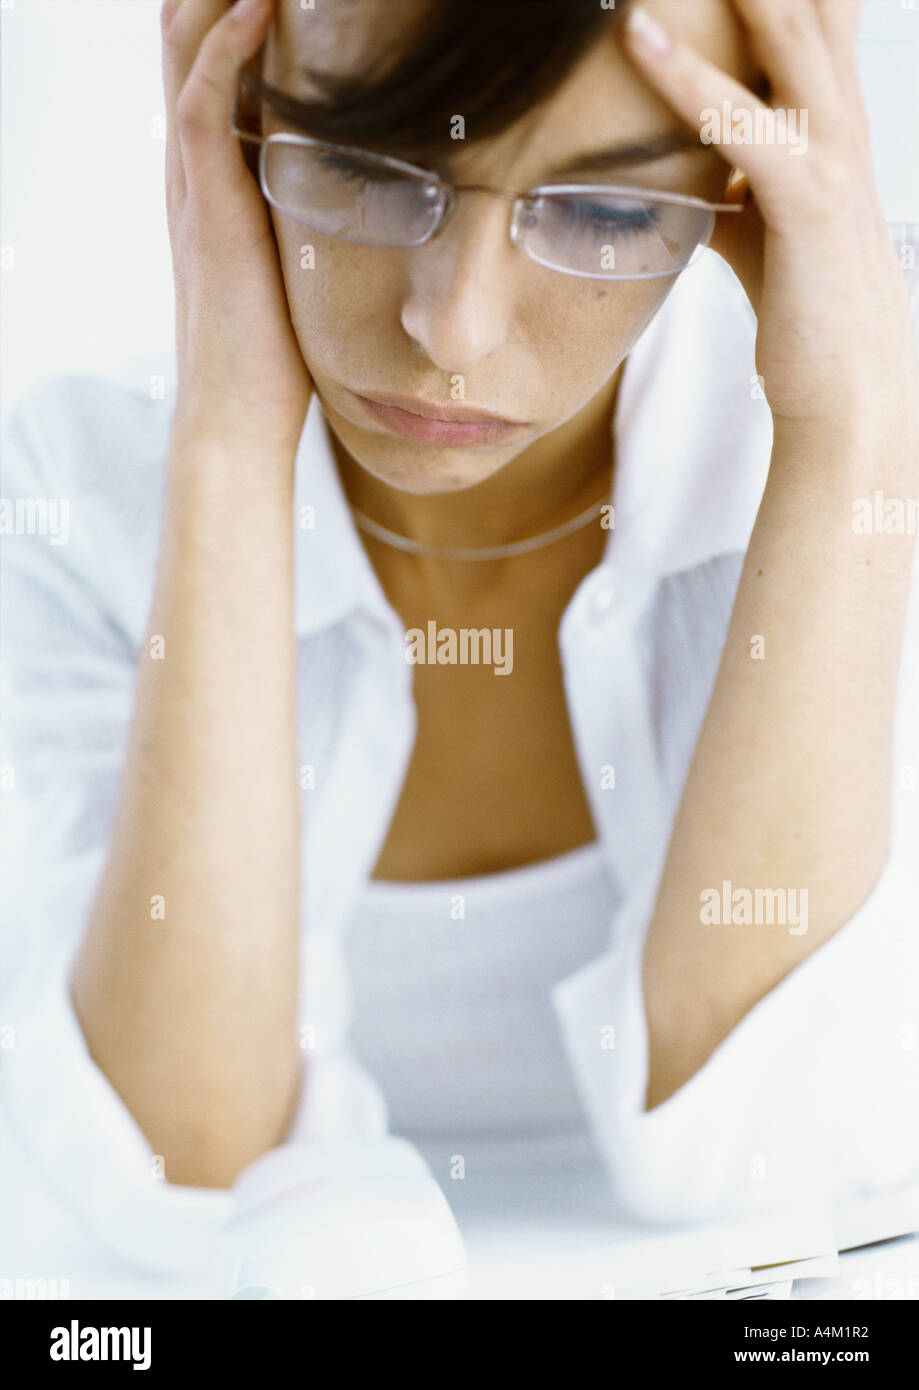 Woman holding head in hands, looking down, high angle view - Stock Image